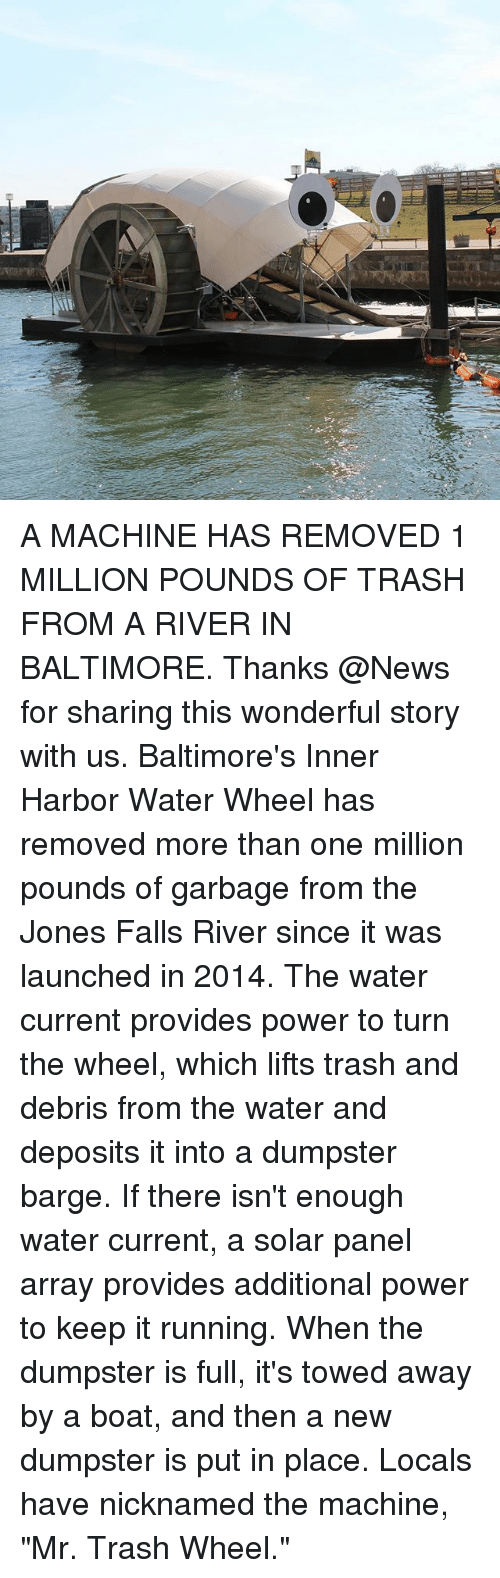 "Memes, 🤖, and Powers: A MACHINE HAS REMOVED 1 MILLION POUNDS OF TRASH FROM A RIVER IN BALTIMORE. Thanks @News for sharing this wonderful story with us. Baltimore's Inner Harbor Water Wheel has removed more than one million pounds of garbage from the Jones Falls River since it was launched in 2014. The water current provides power to turn the wheel, which lifts trash and debris from the water and deposits it into a dumpster barge. If there isn't enough water current, a solar panel array provides additional power to keep it running. When the dumpster is full, it's towed away by a boat, and then a new dumpster is put in place. Locals have nicknamed the machine, ""Mr. Trash Wheel."""